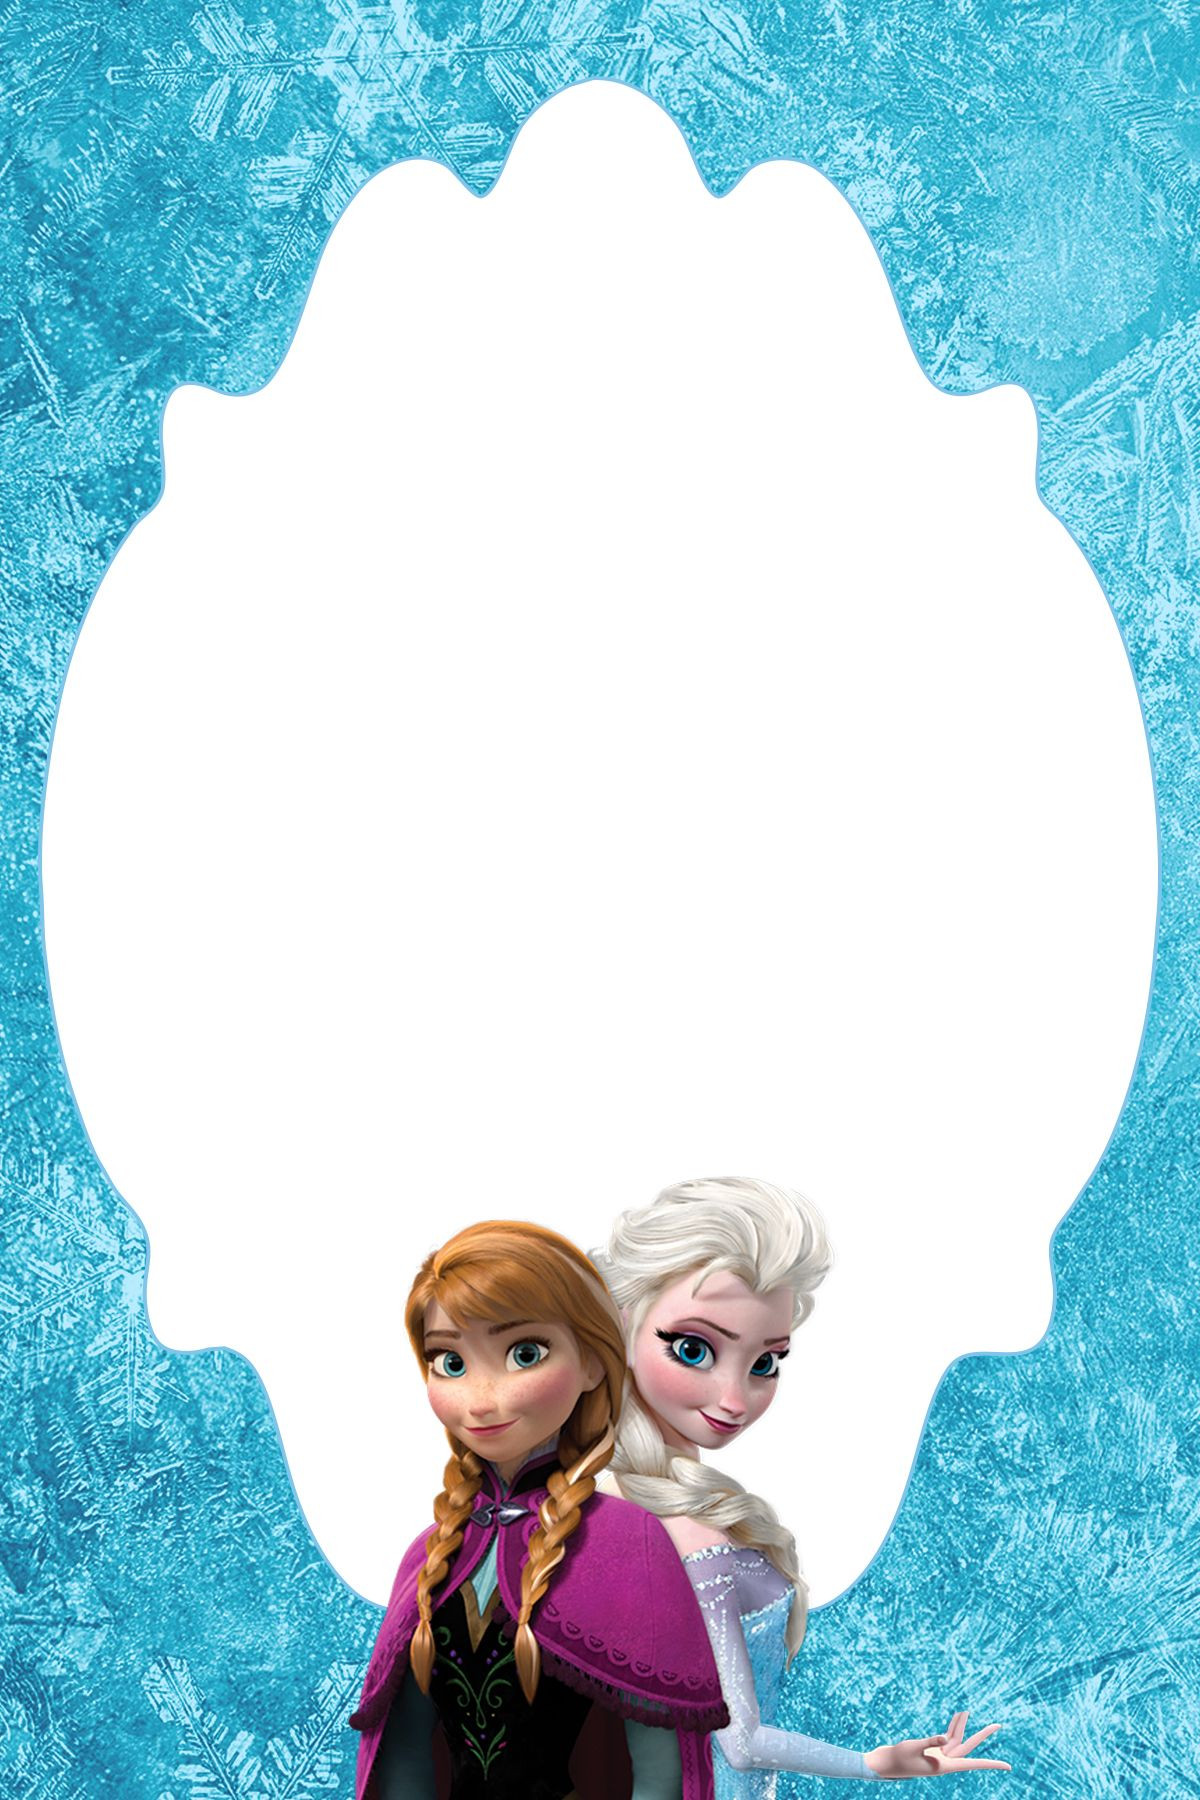 Frozen Invitations Printable Free 4—6 Free Frozen Blank Thank You Card or Treat Bag topper